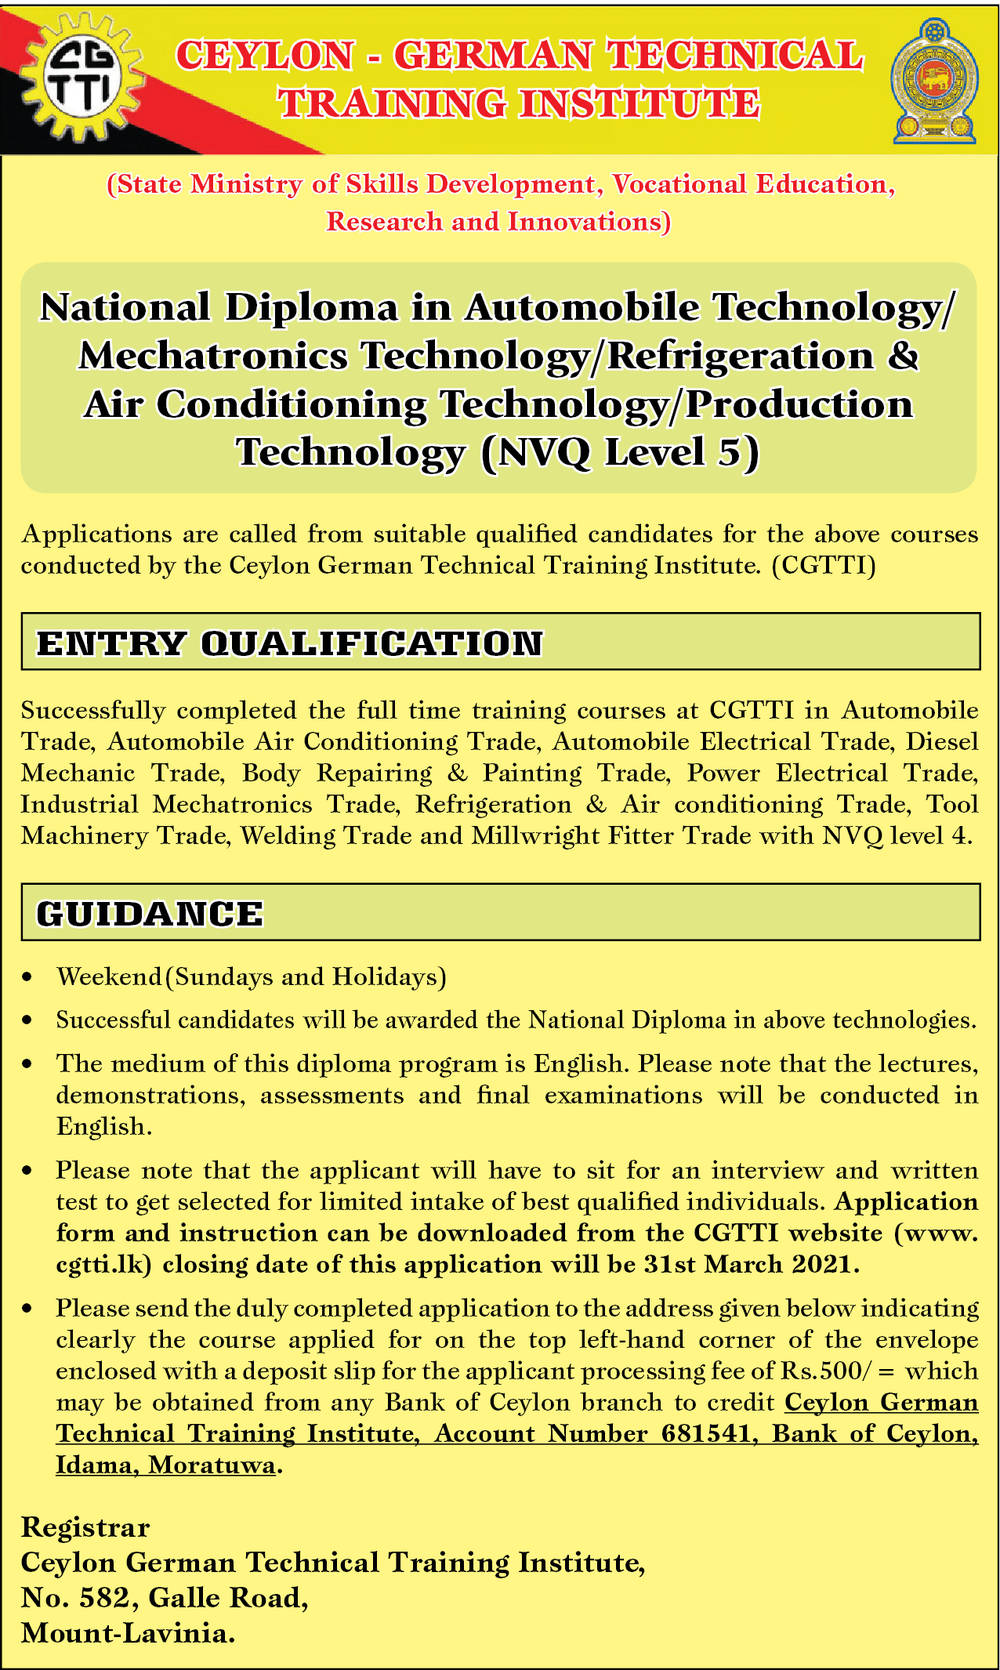 National Diploma in Automobile Technology/Mechatronics Technology/Refrigeration & Air Conditioning Technology/Production Technology (NVQ Level 5) - Ceylon  German Technical Training Institute